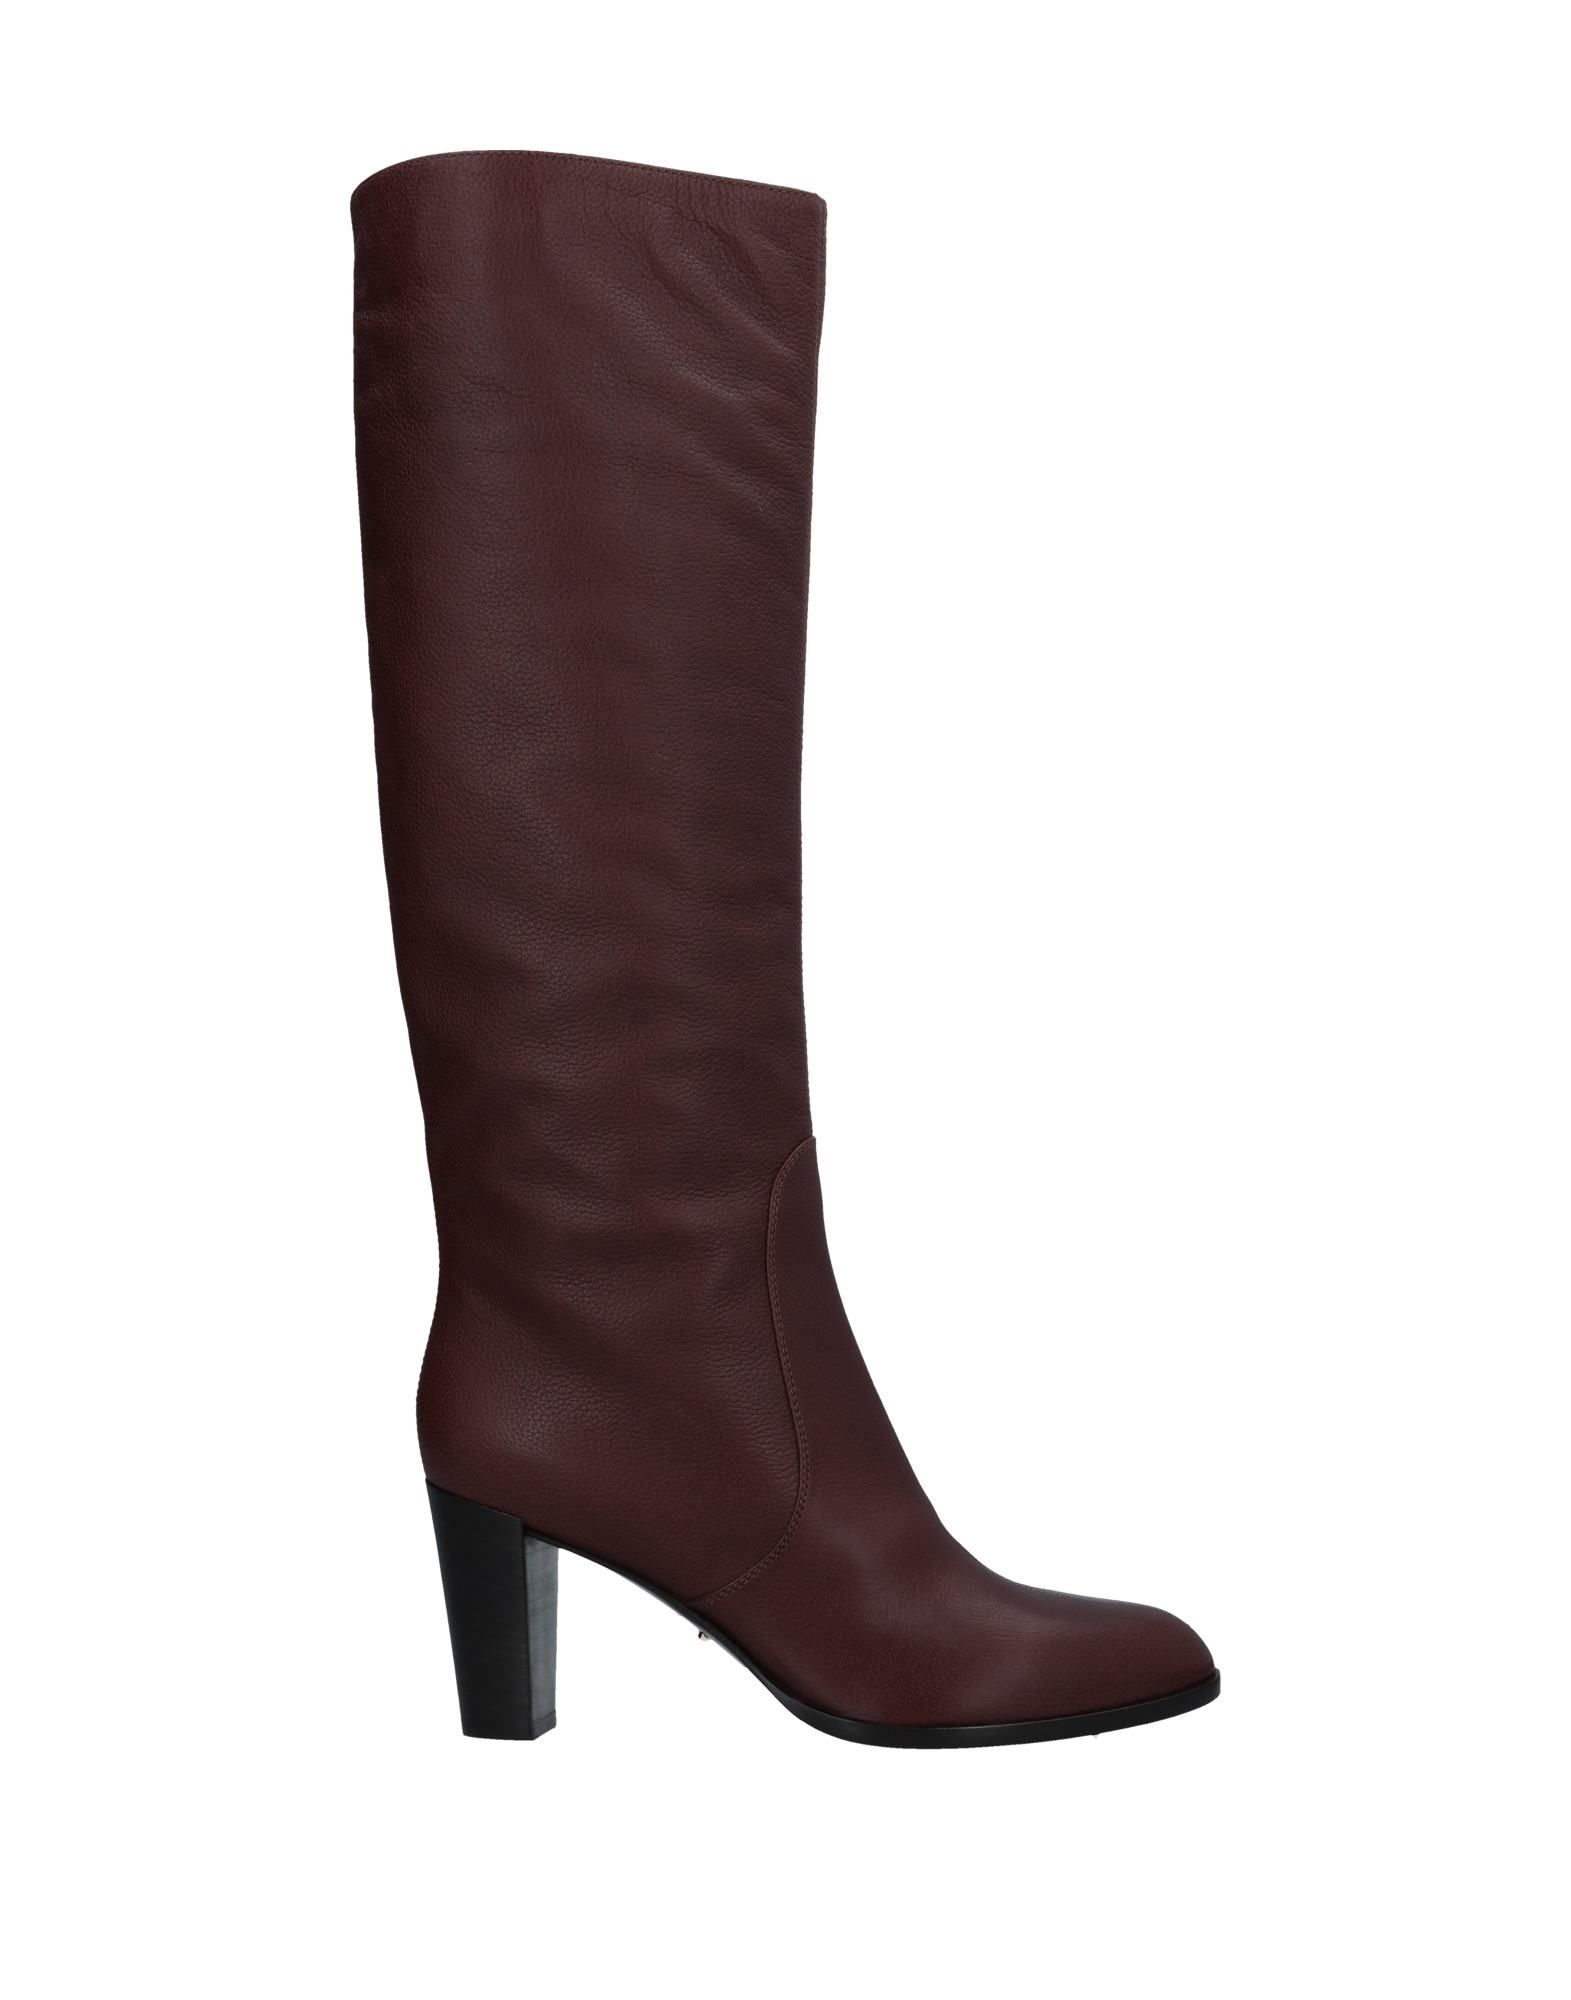 Sergio Rossi Boots - Women Sergio Rossi Boots online on 11531032FP  United Kingdom - 11531032FP on b8ef33